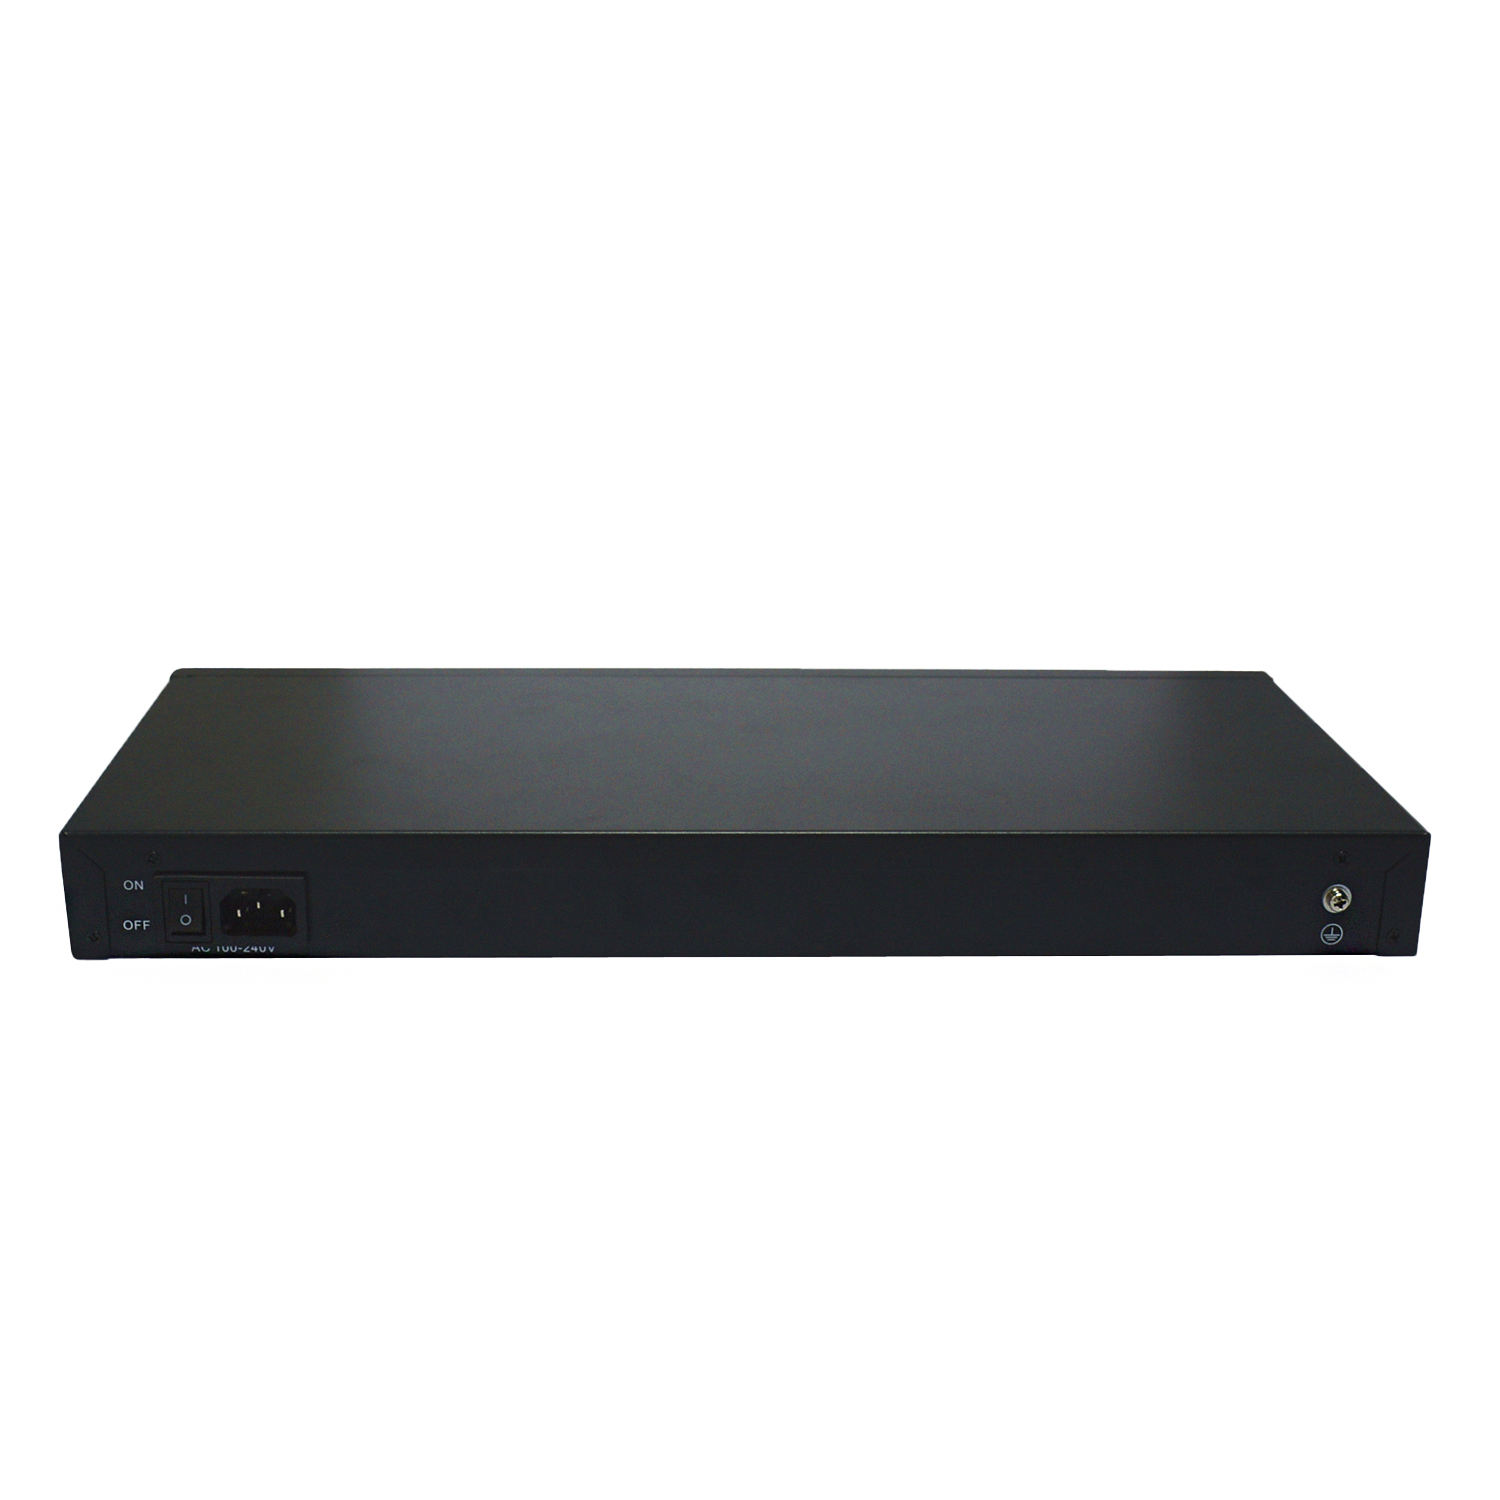 Maxincom 32 Fxs Gateway Analog Telepon <span class=keywords><strong>Ip</strong></span> Switch <span class=keywords><strong>VOIP</strong></span> Gateway